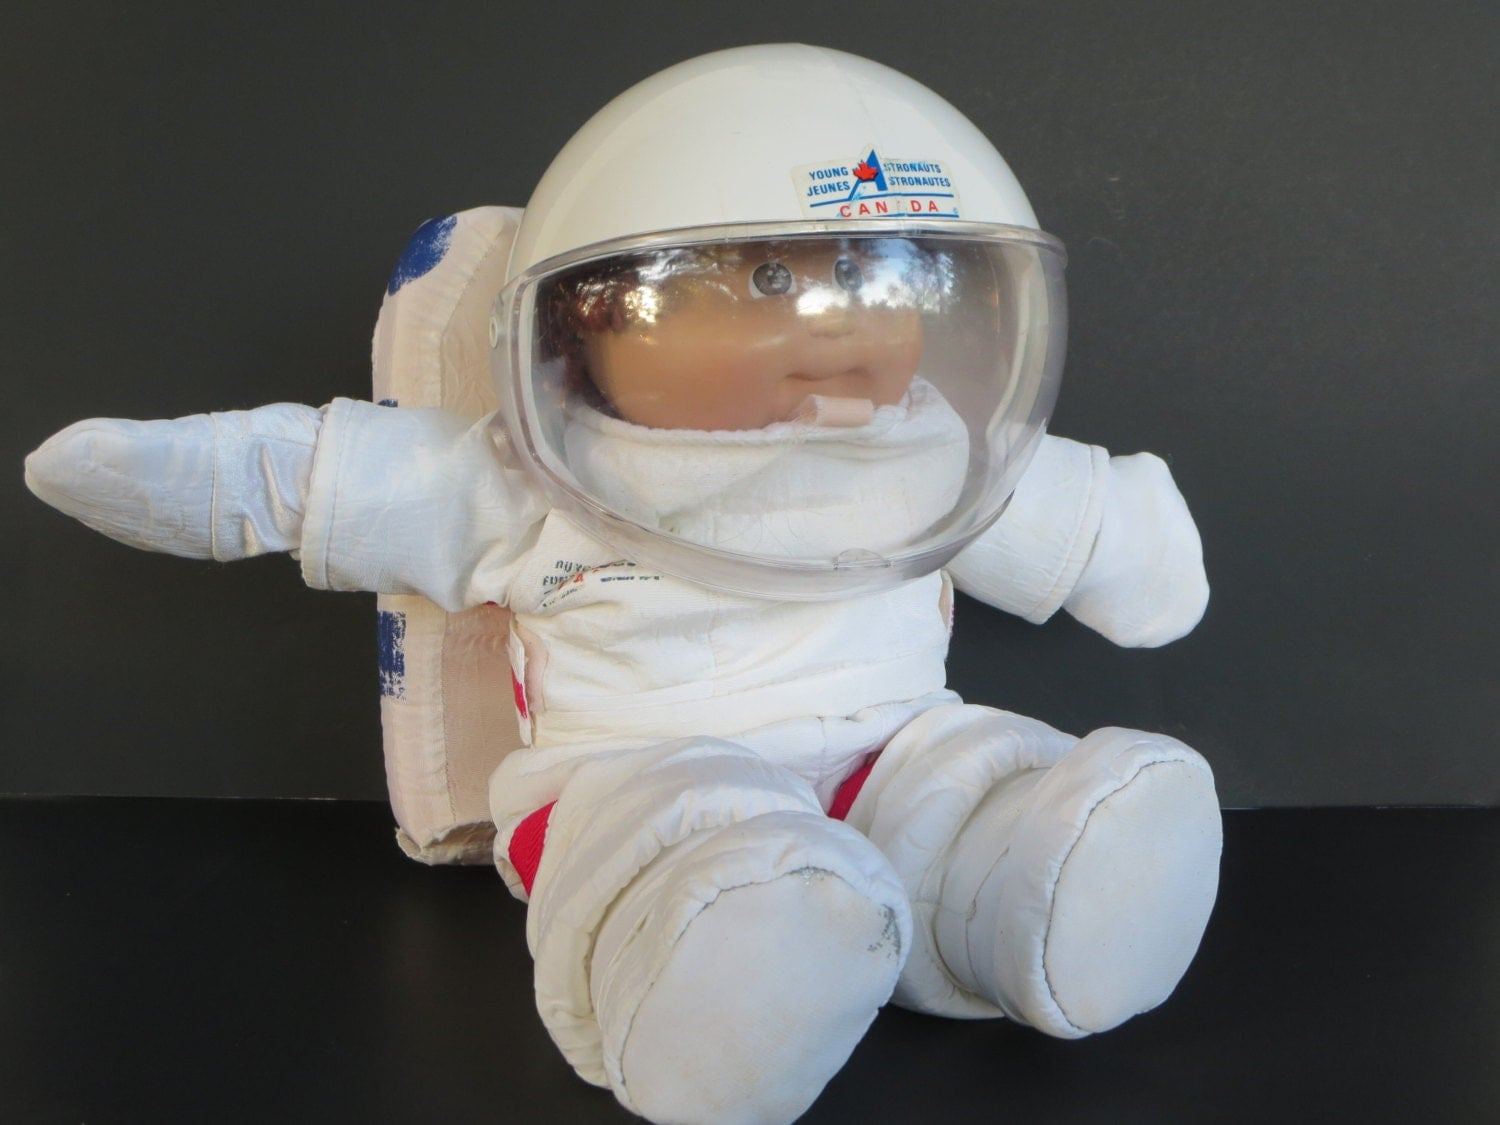 young astronauts cabbage patch doll - photo #36